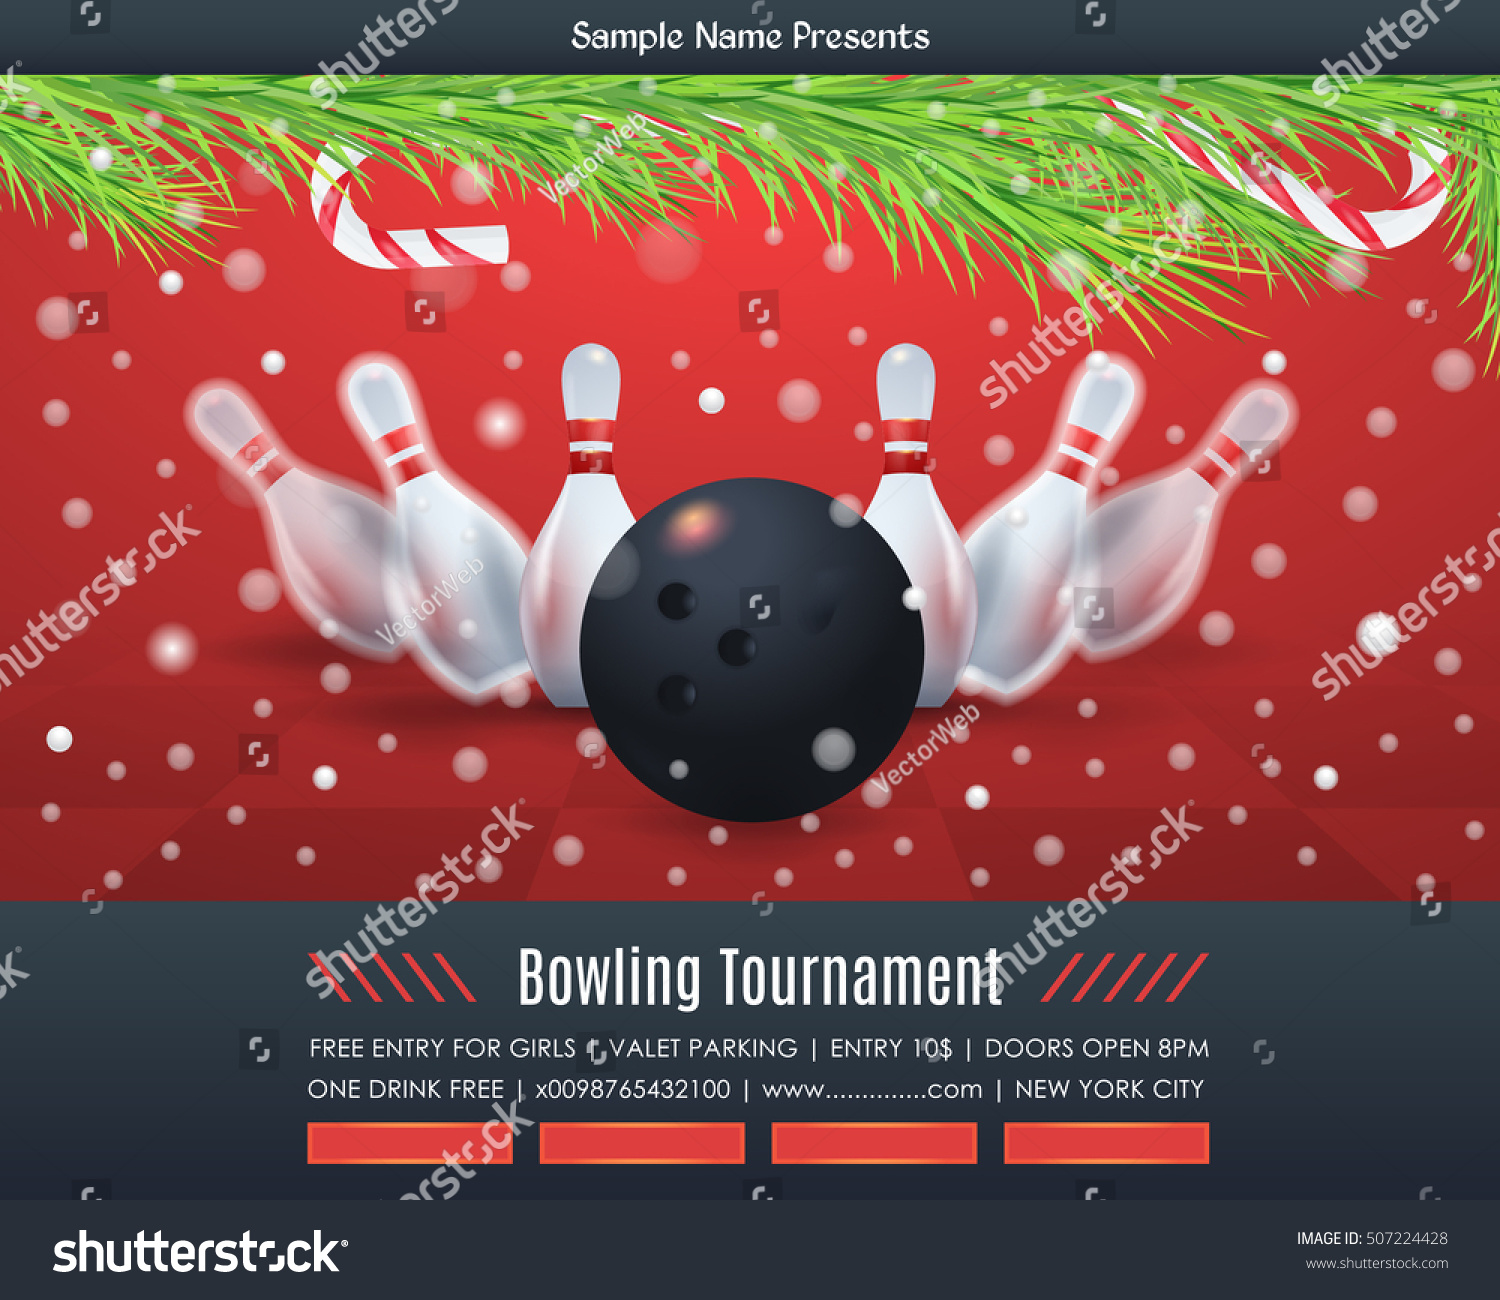 Bowl Tournament Christmas Event Bowling Poster Stock Vector